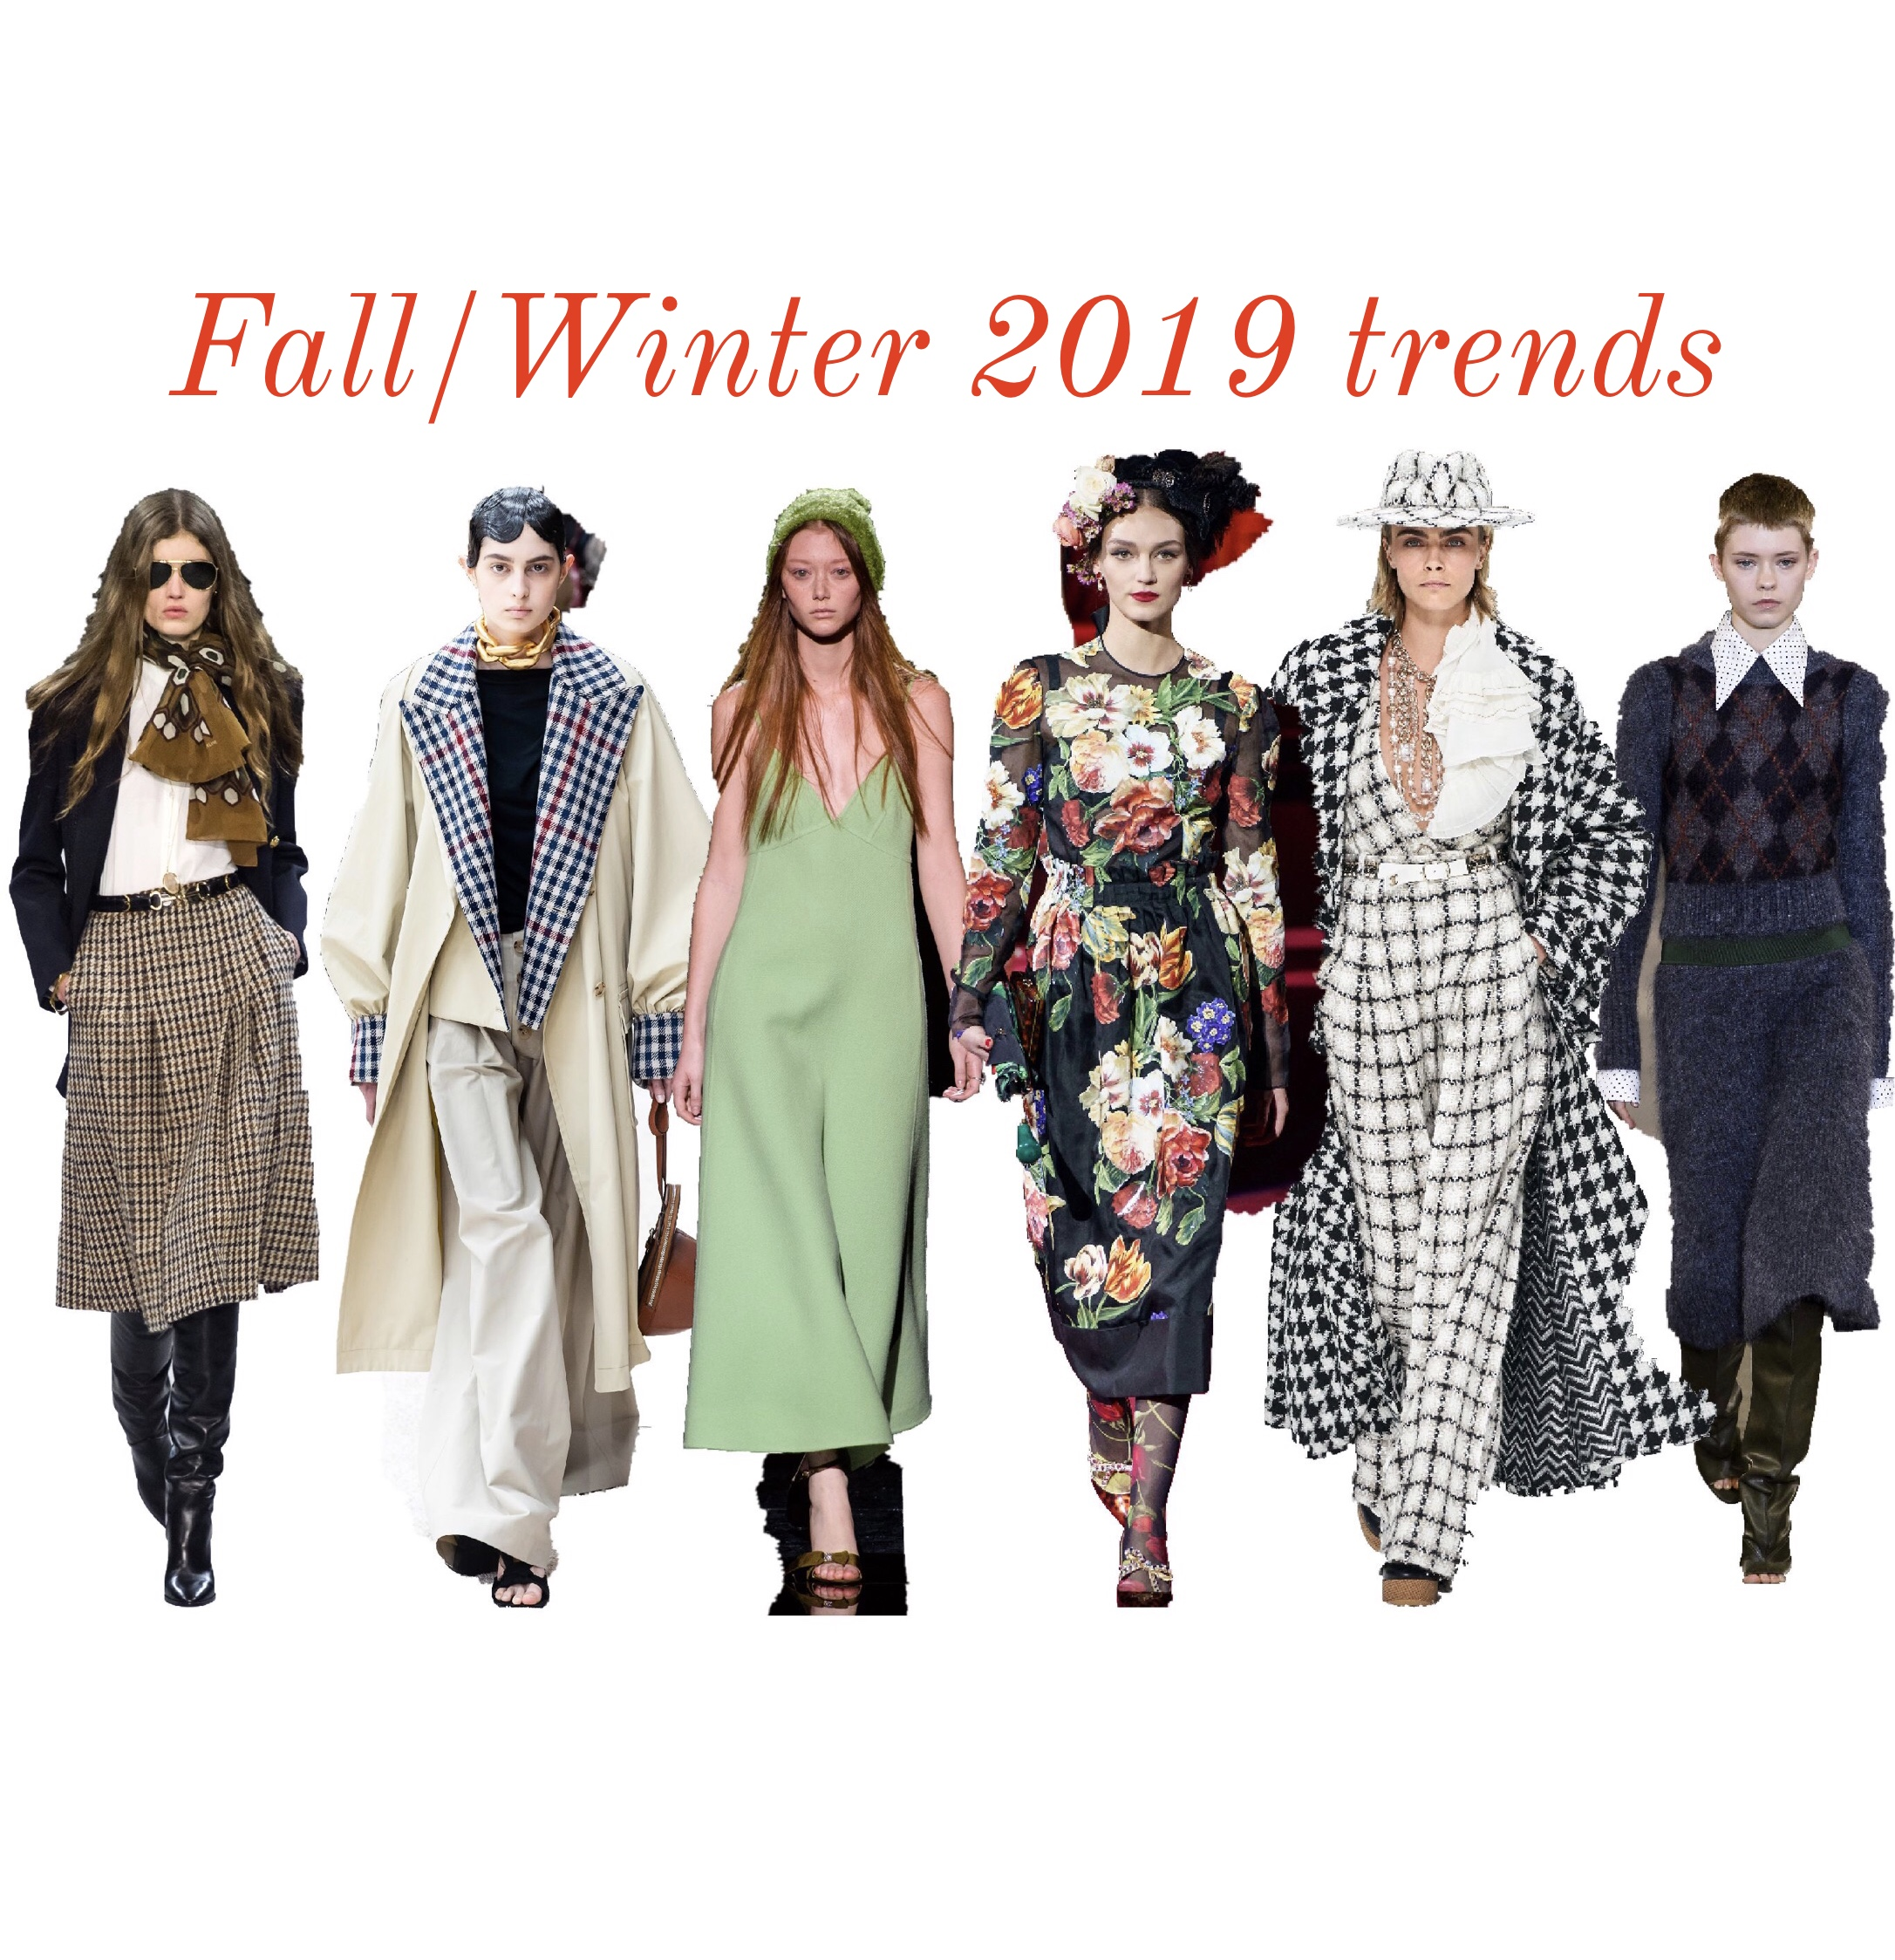 6 KEY TRENDS TO TRY FOR FALL/WINTER 2019